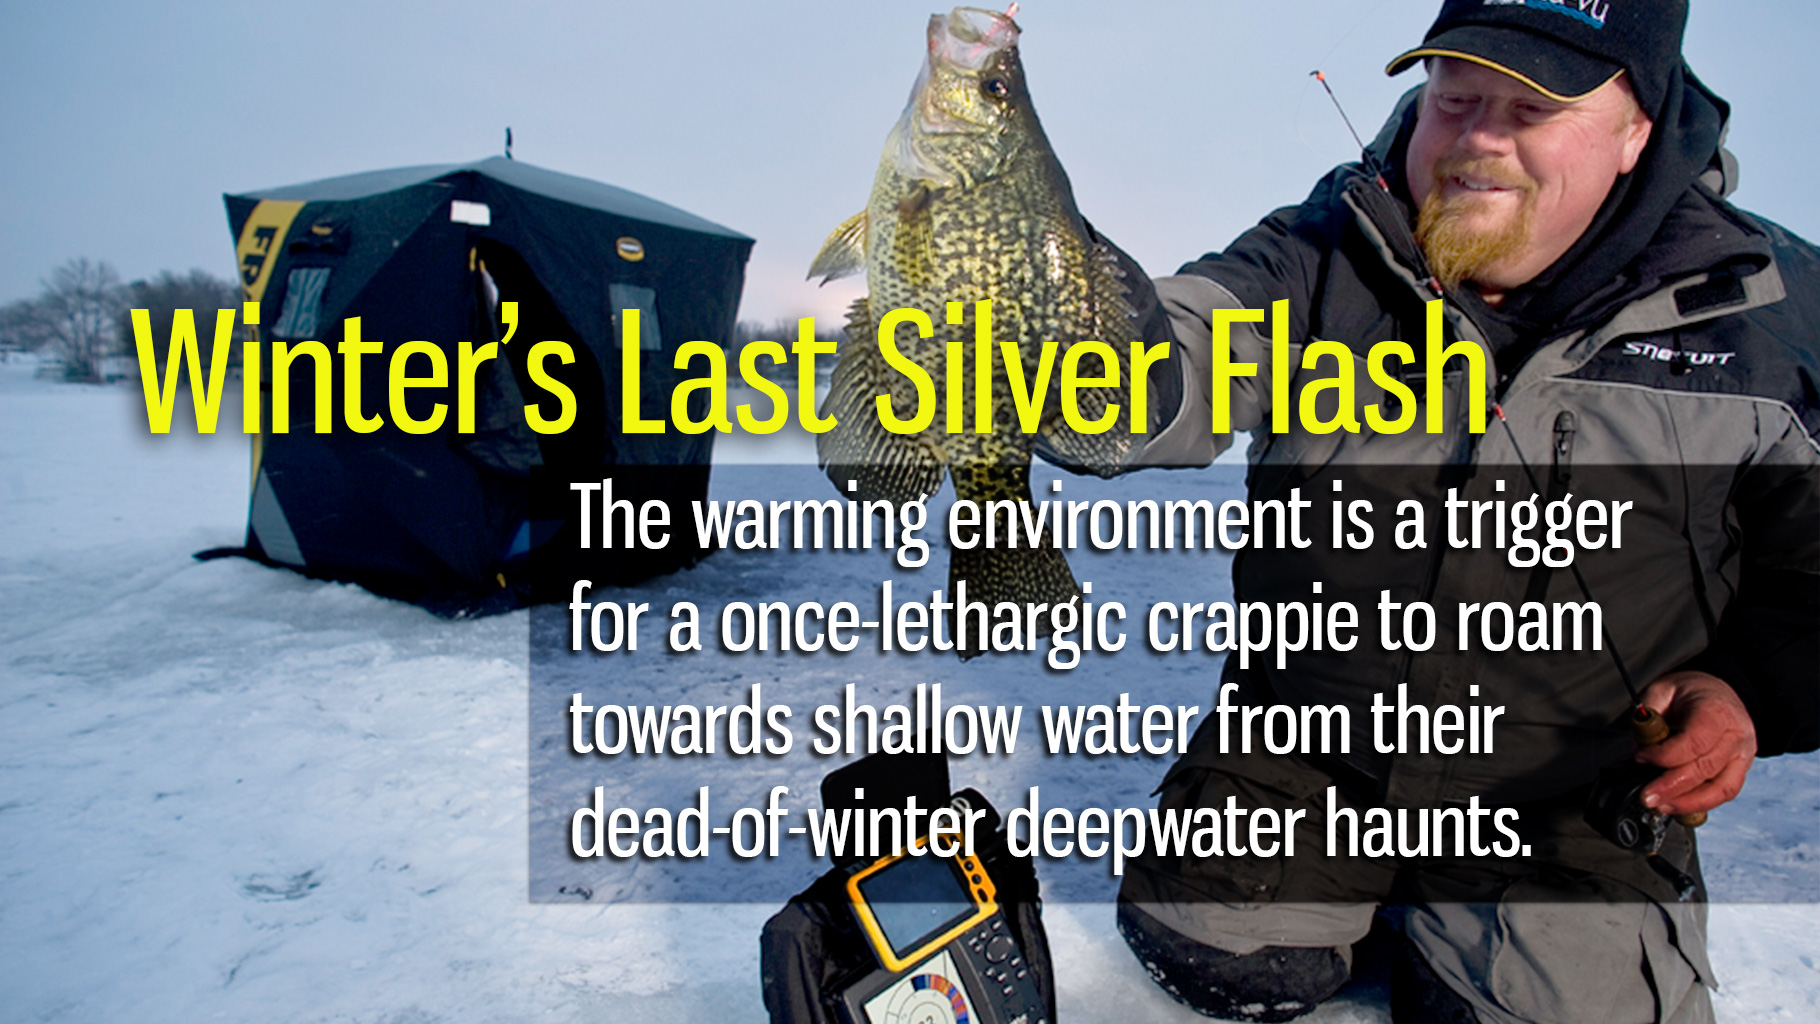 Winter's Last Silver Flash